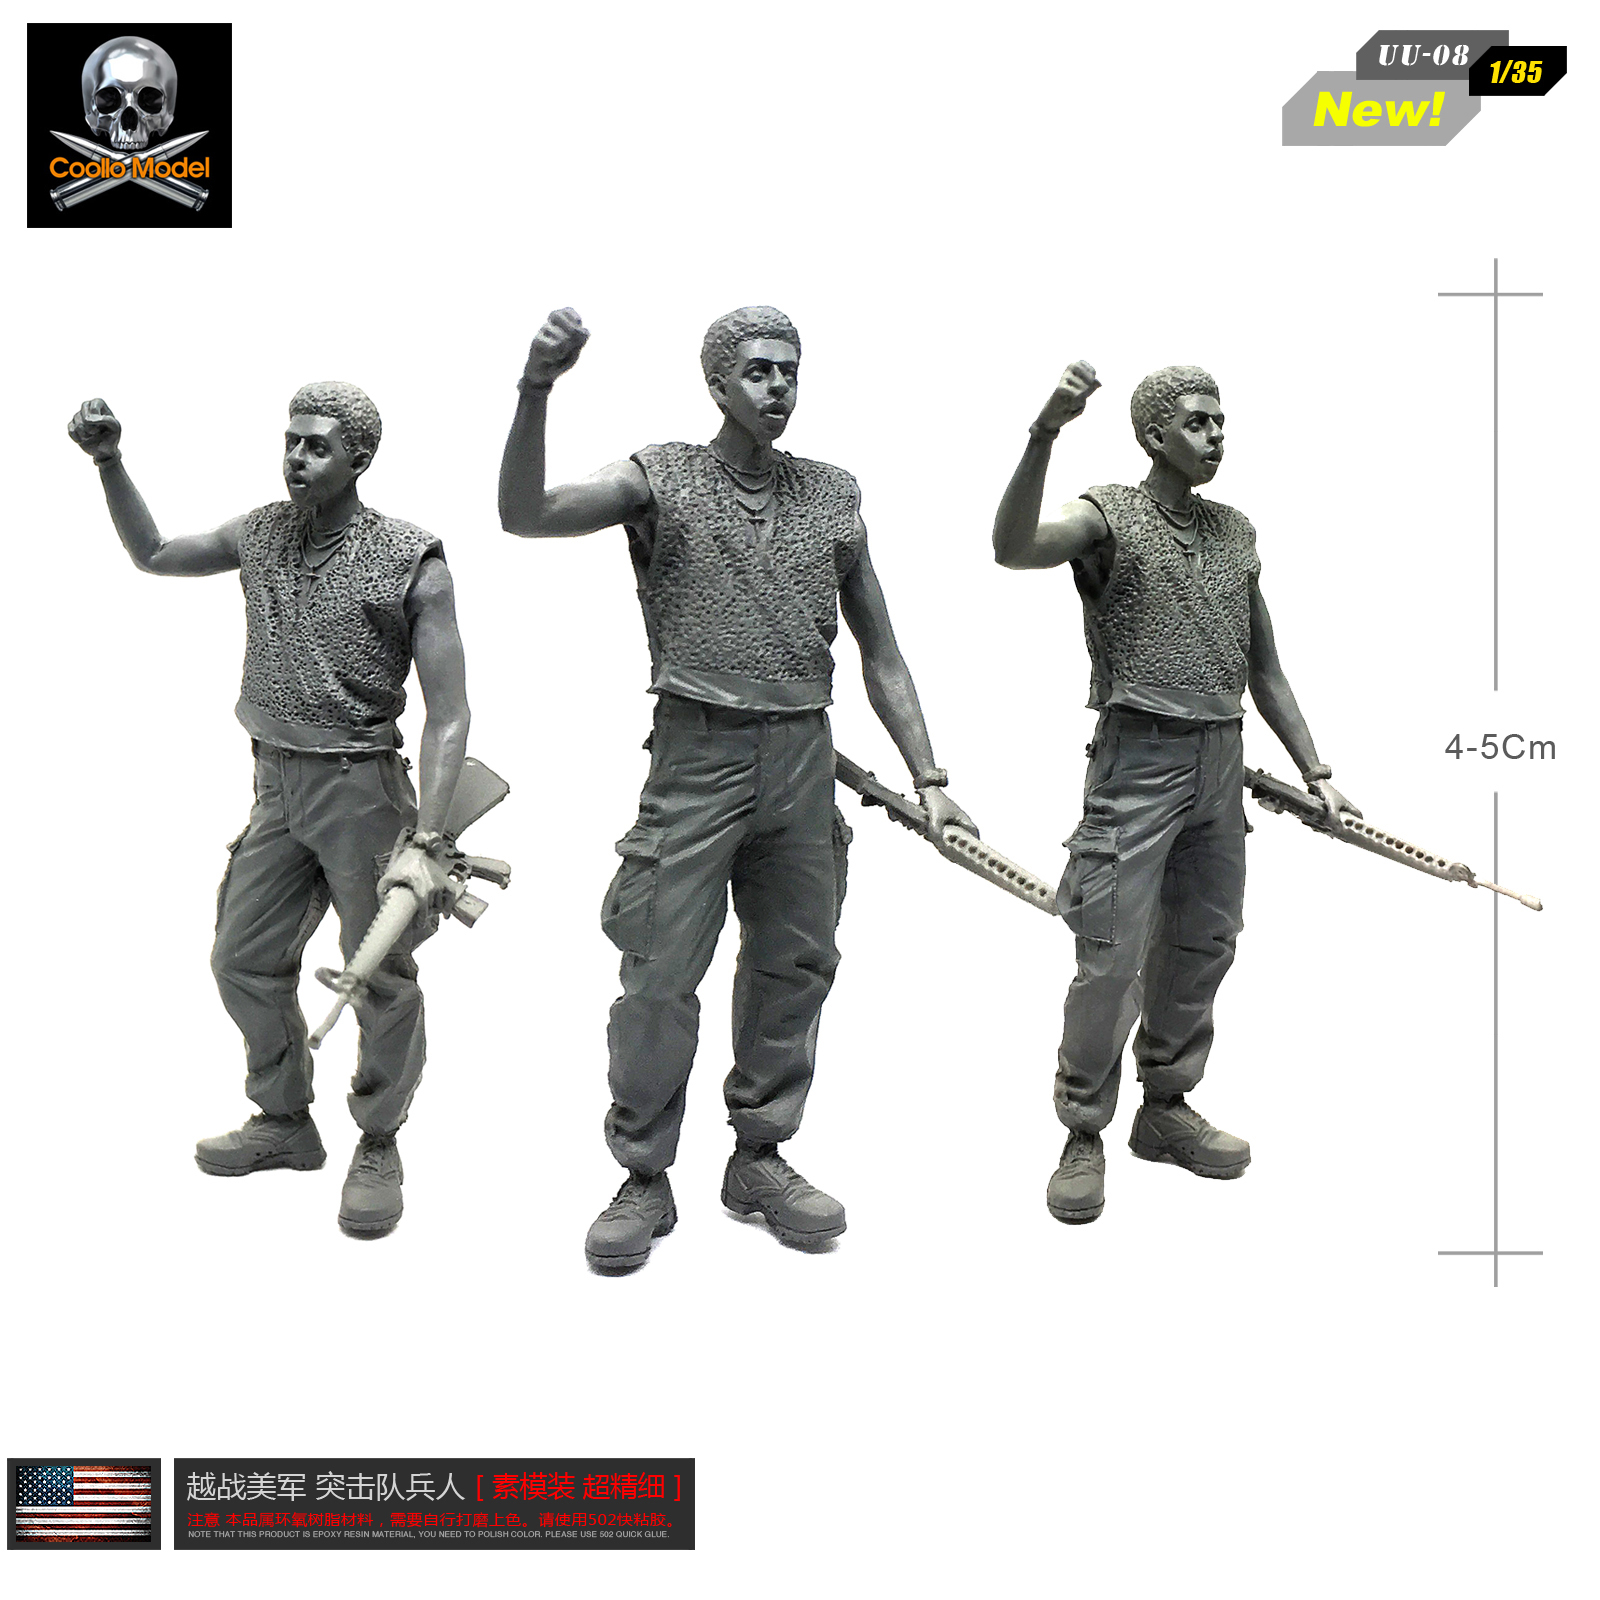 1/35  Resin Soldier Model Of Us Marine Corps  Soldier Figure Kits Self-assembled  UU-08